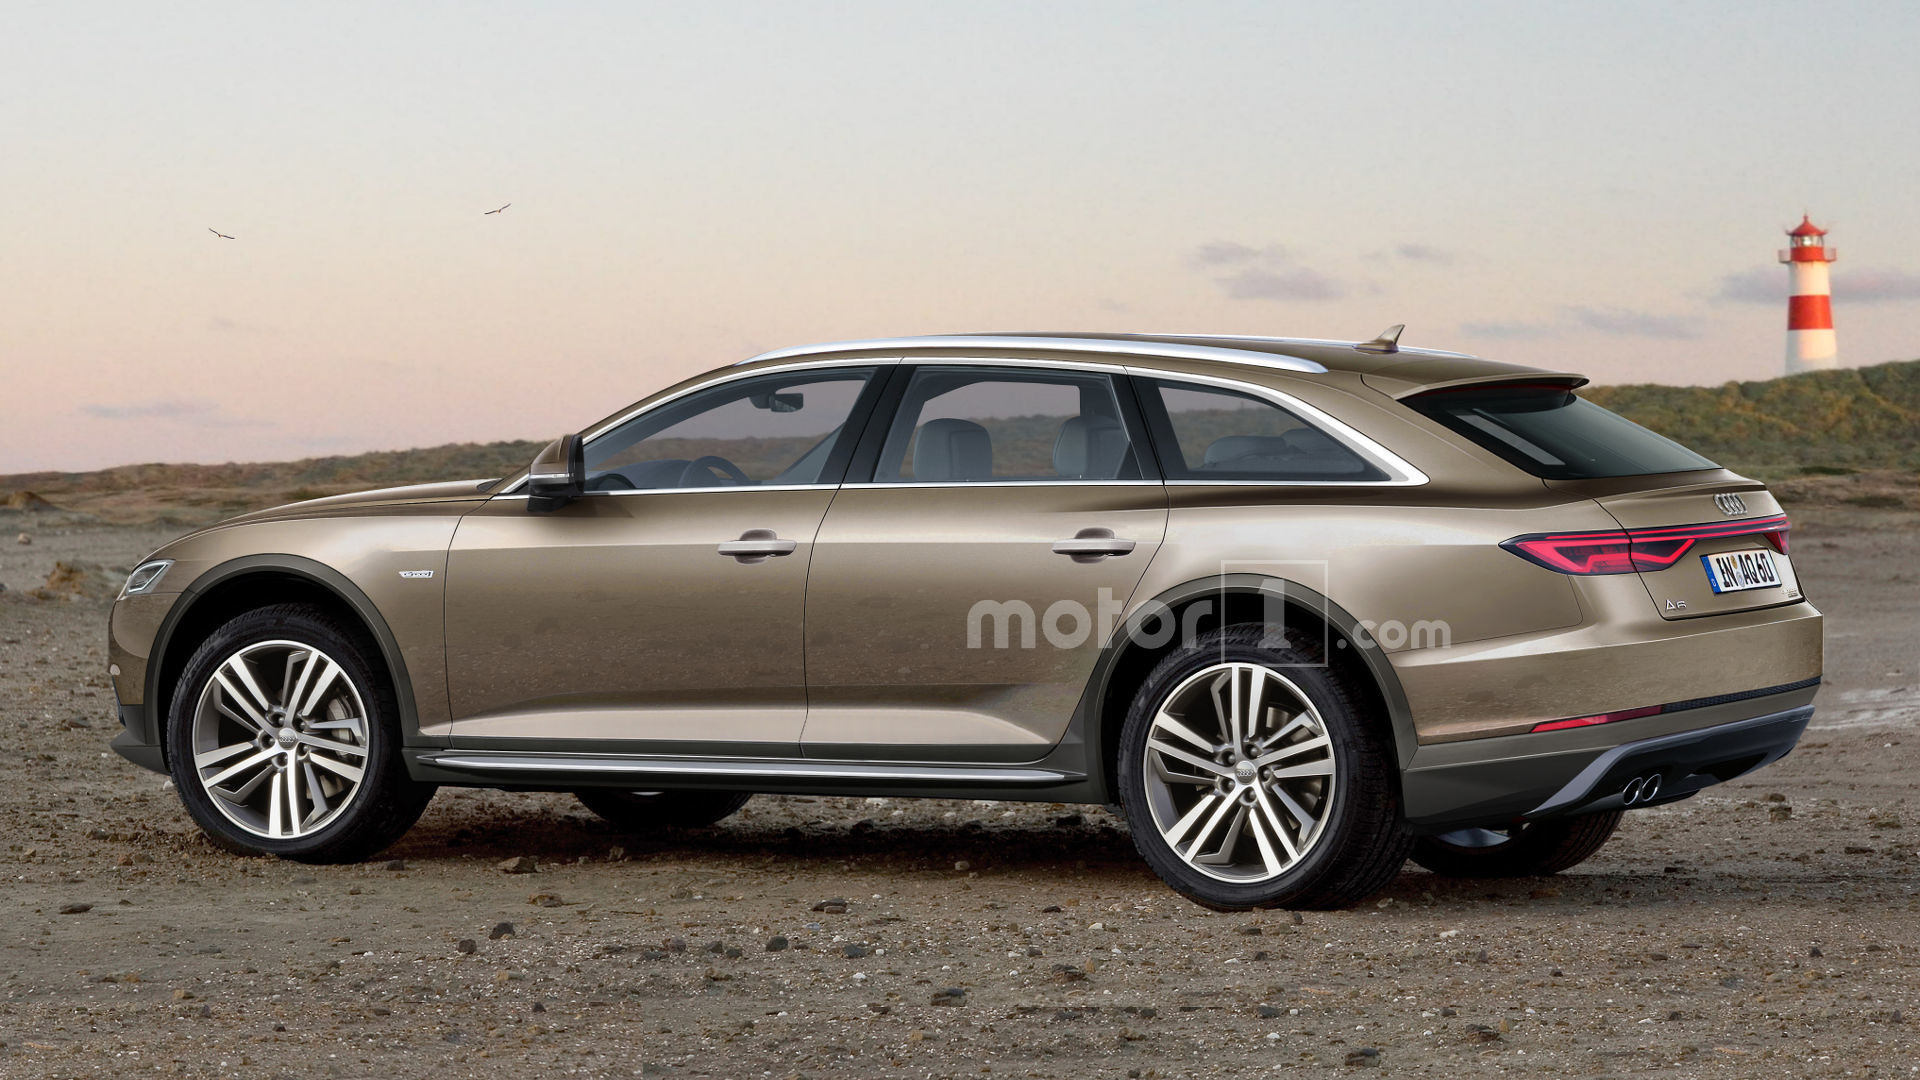 Audi A Allroad Rendering Looks Ready To Get Dirty - Audi a6 allroad